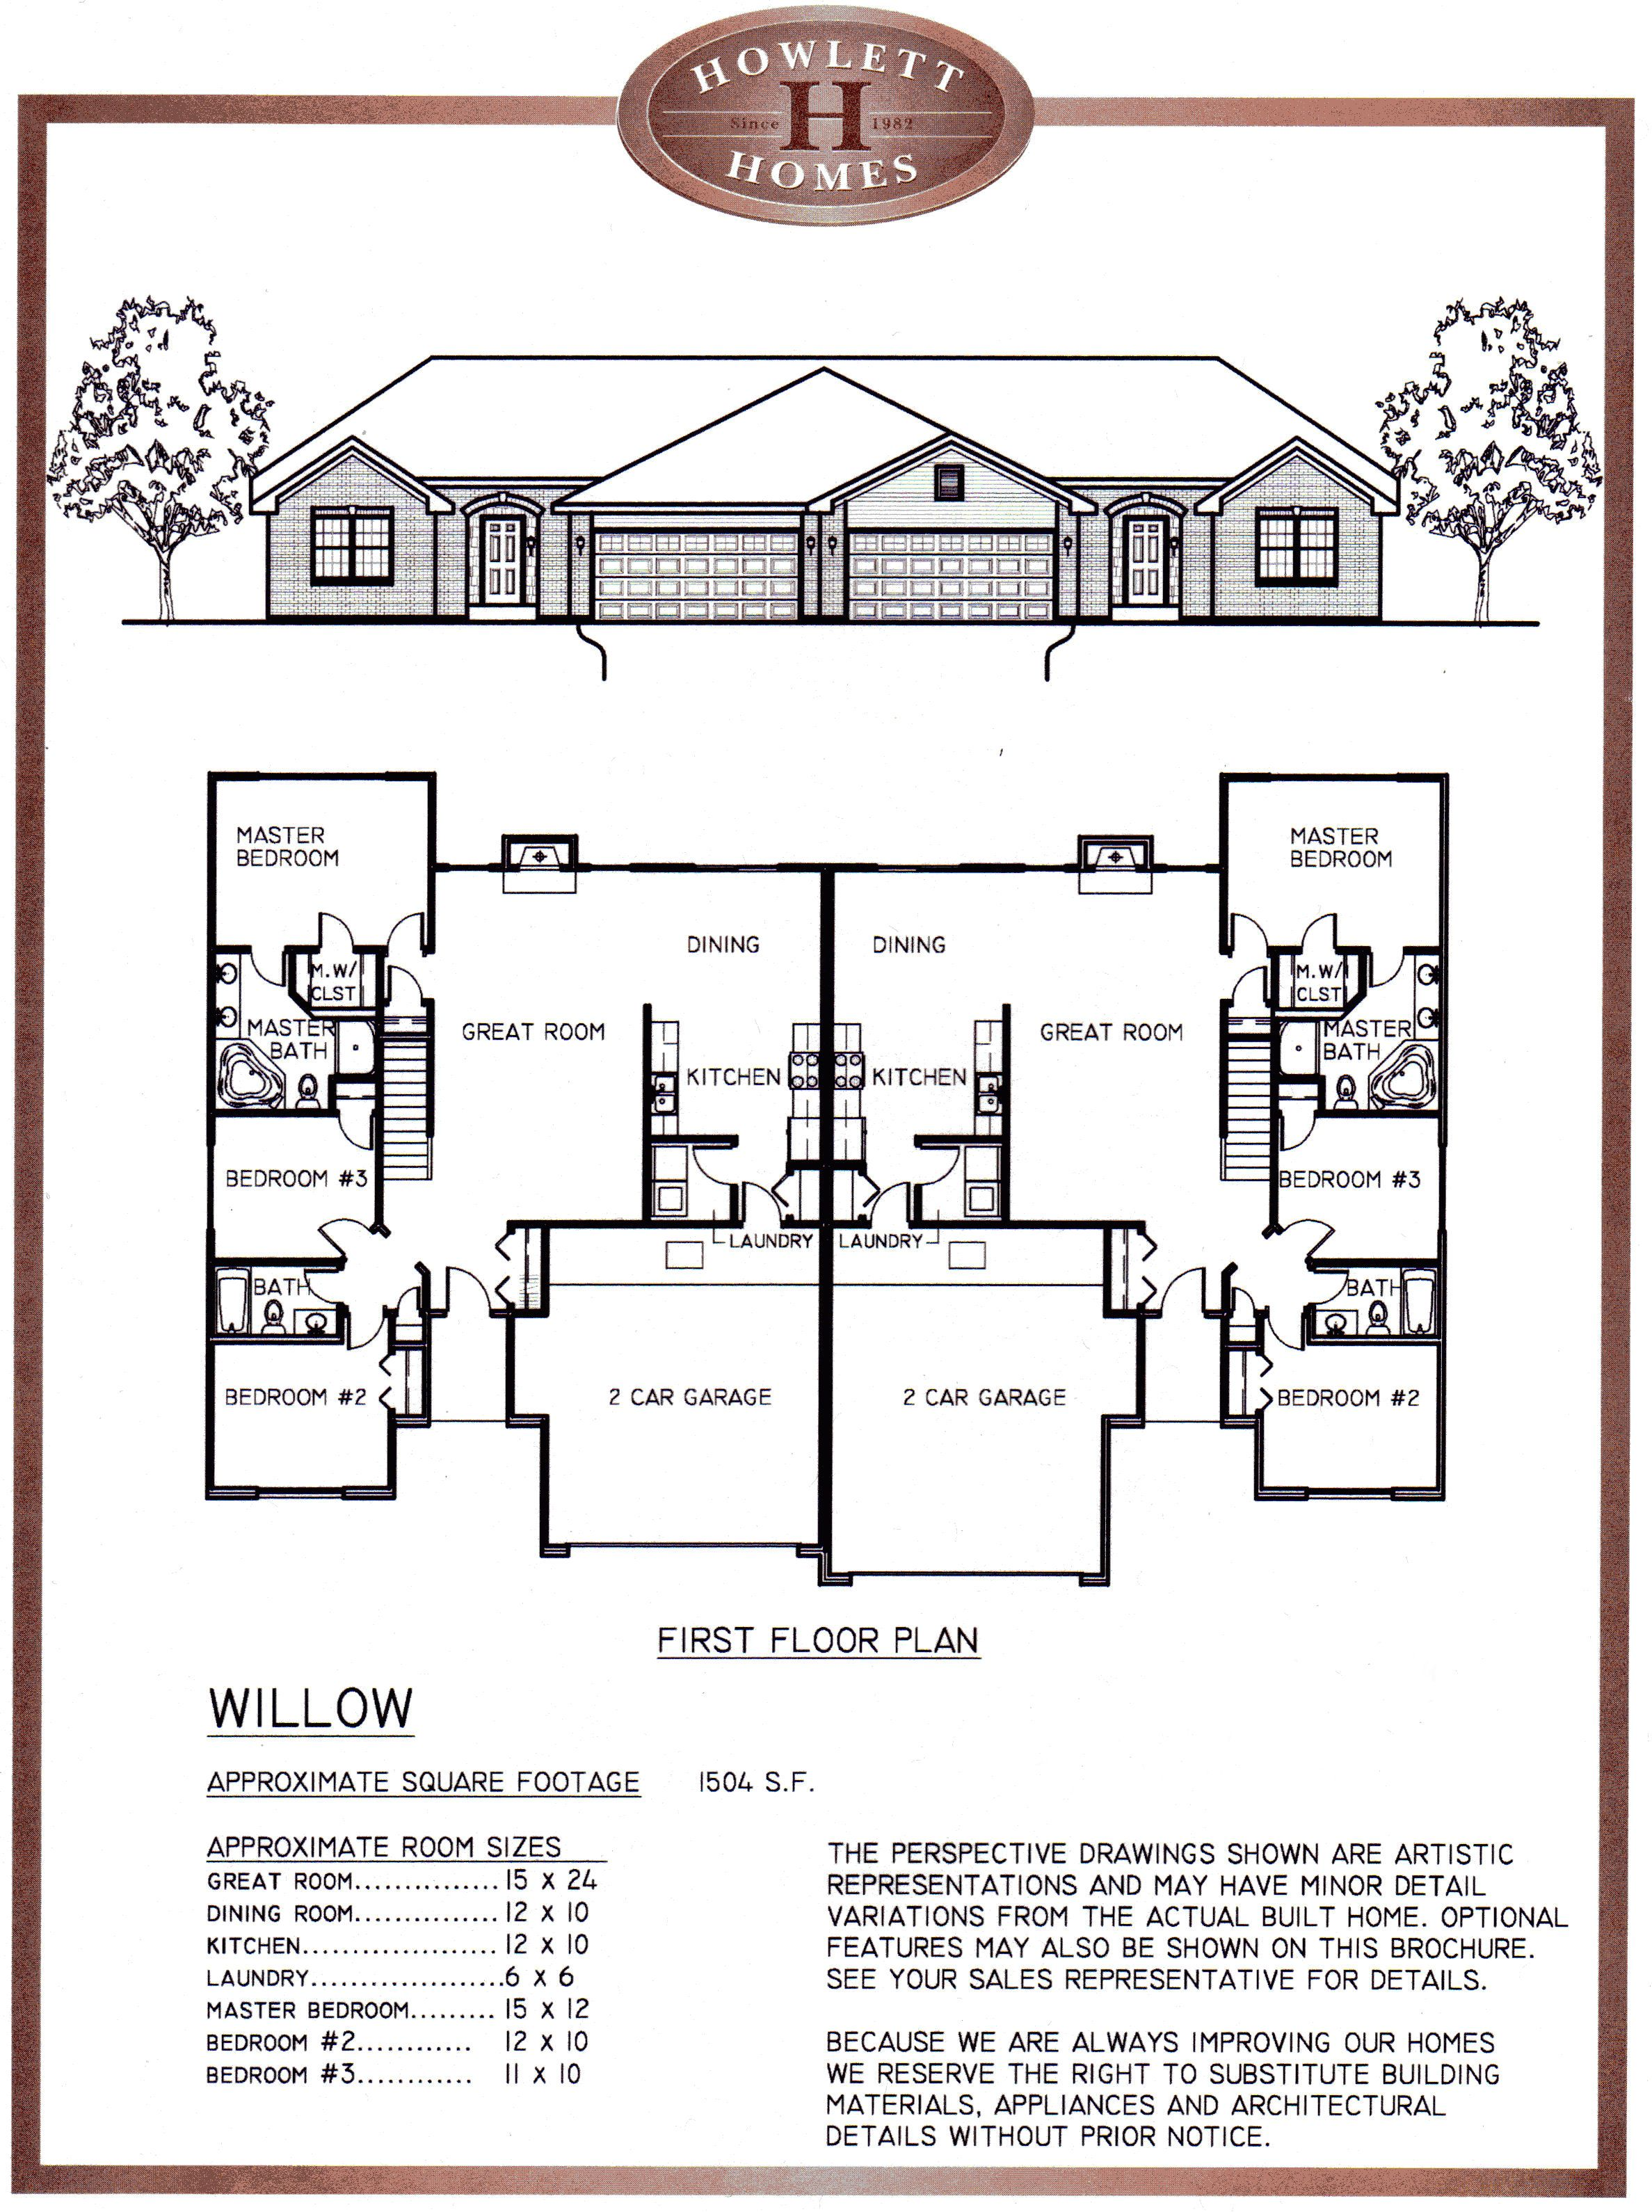 Willow Floor Plan Jpg 2375 3180 Pixels Duplex Floor Plans Duplex House Plans Duplex House Design